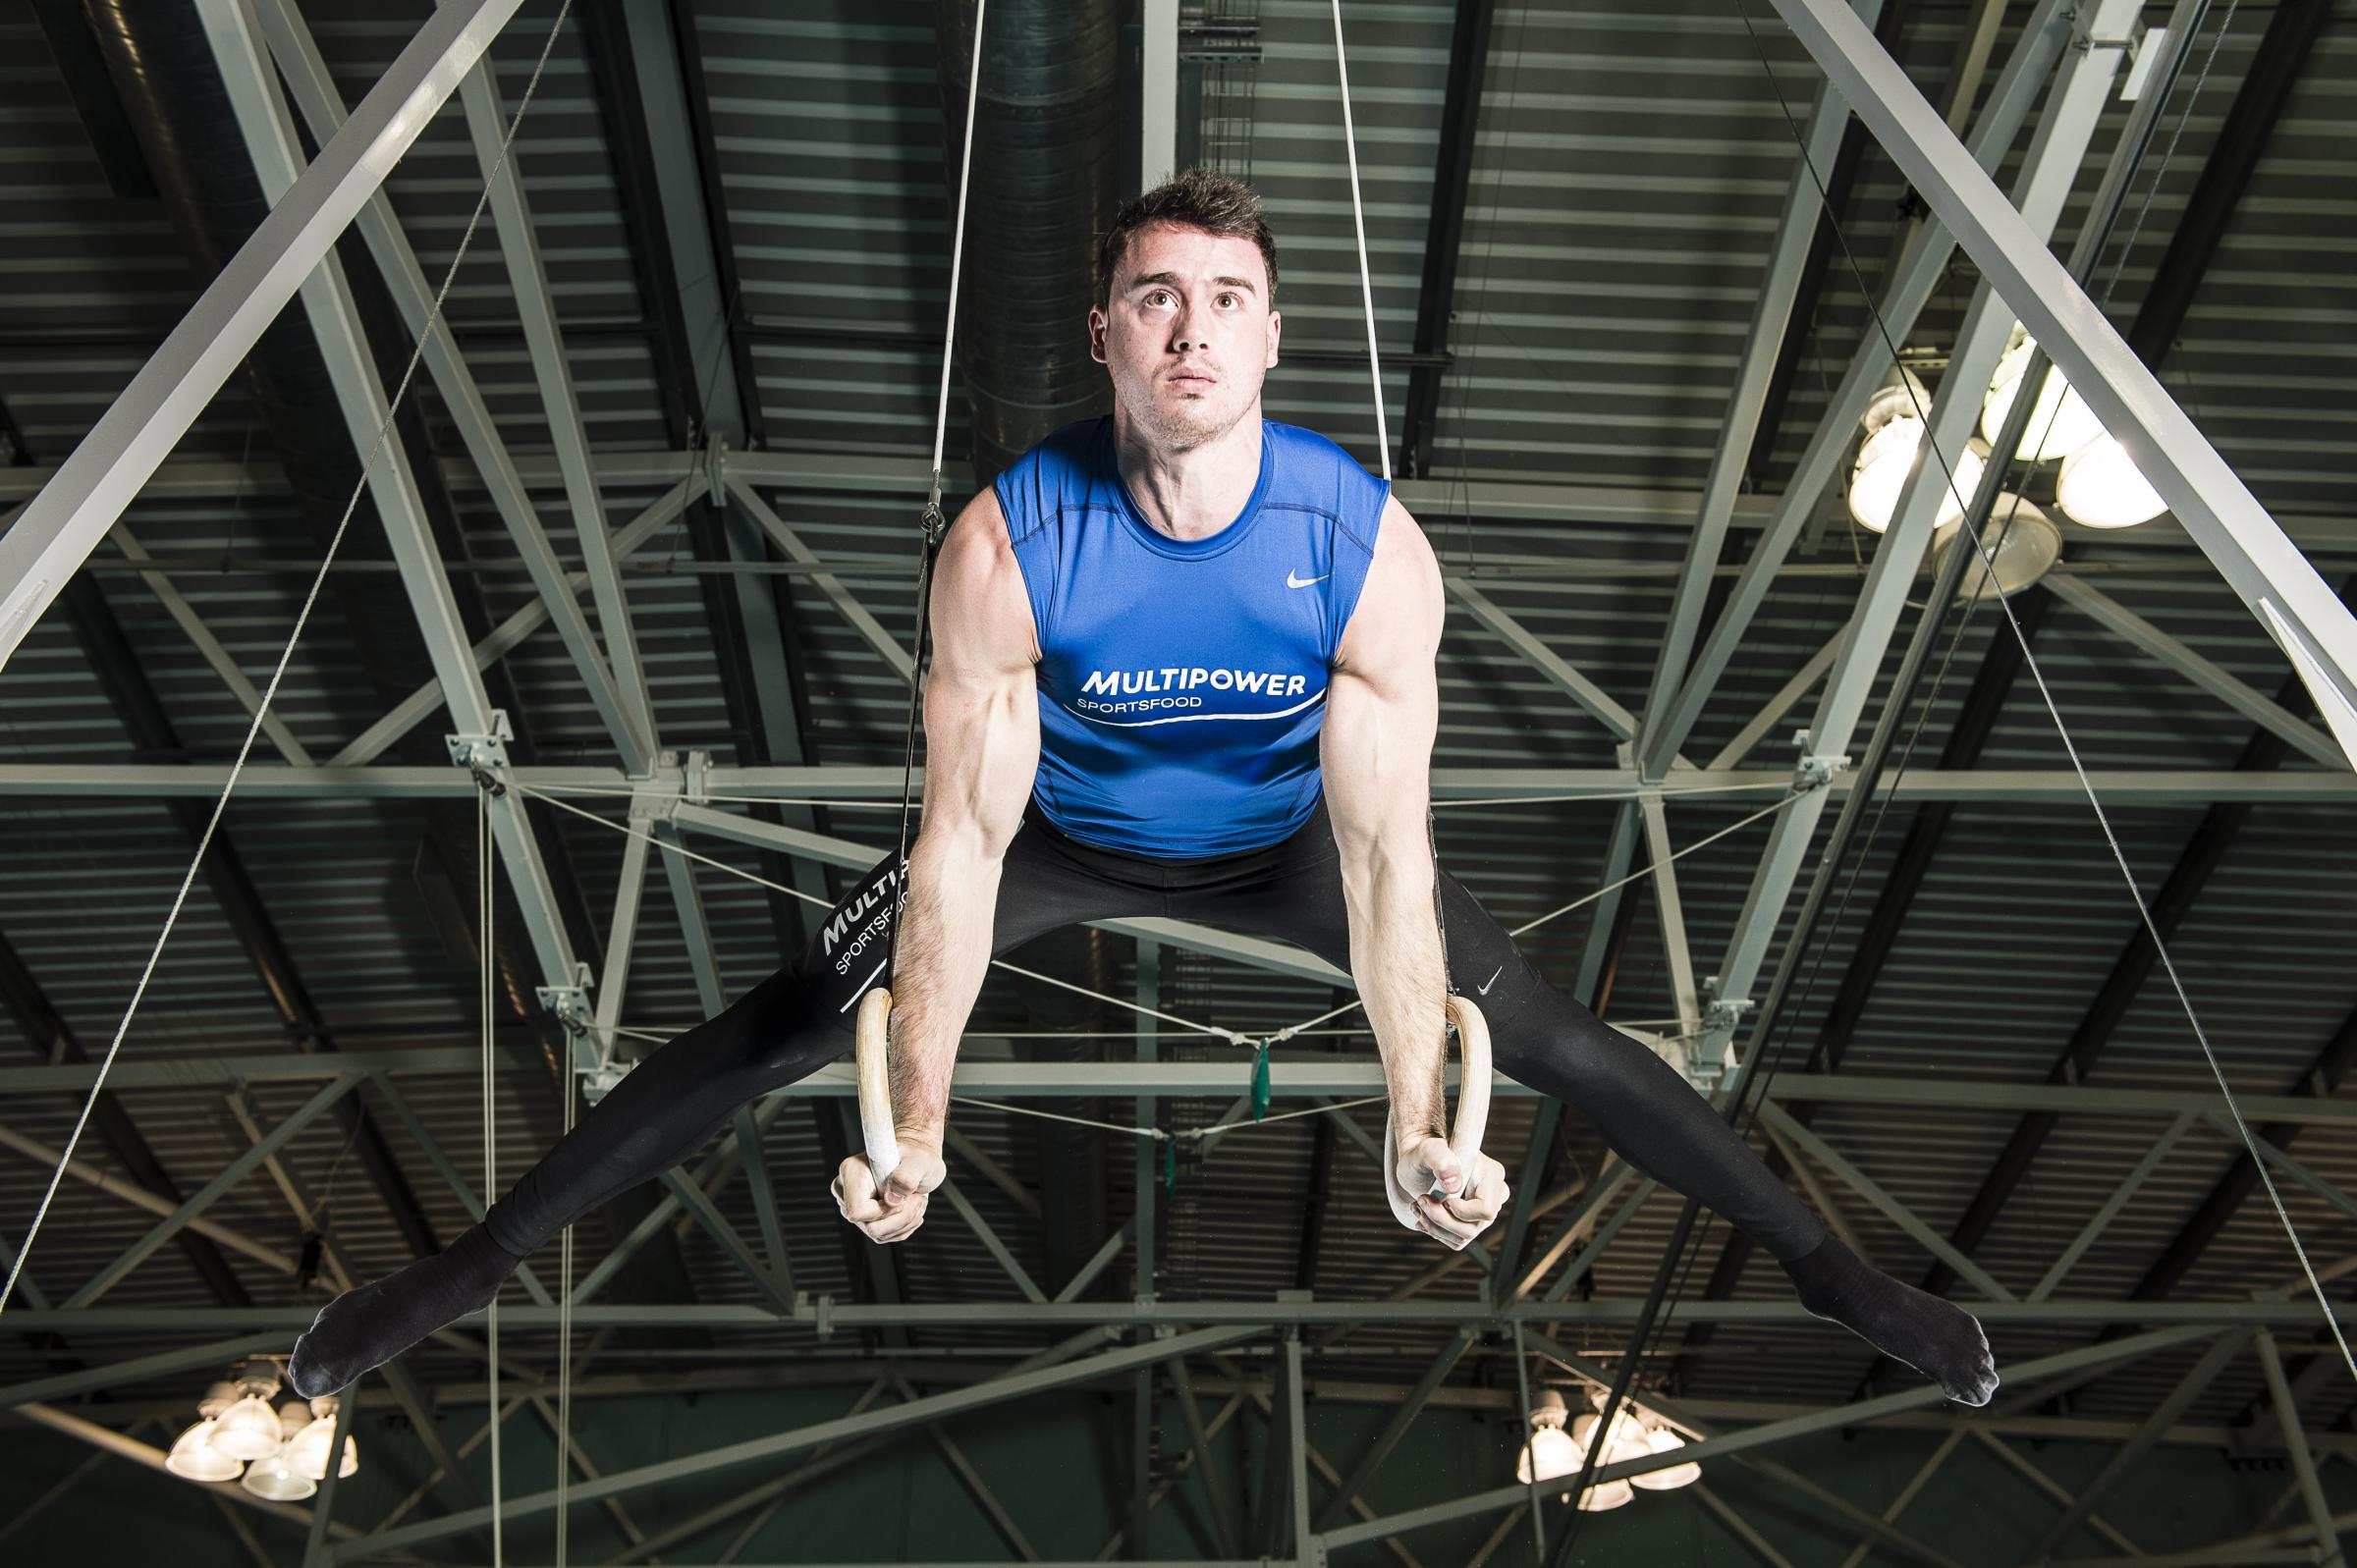 Olympic hero Kristian Thomas is preparing for a big year ahead.